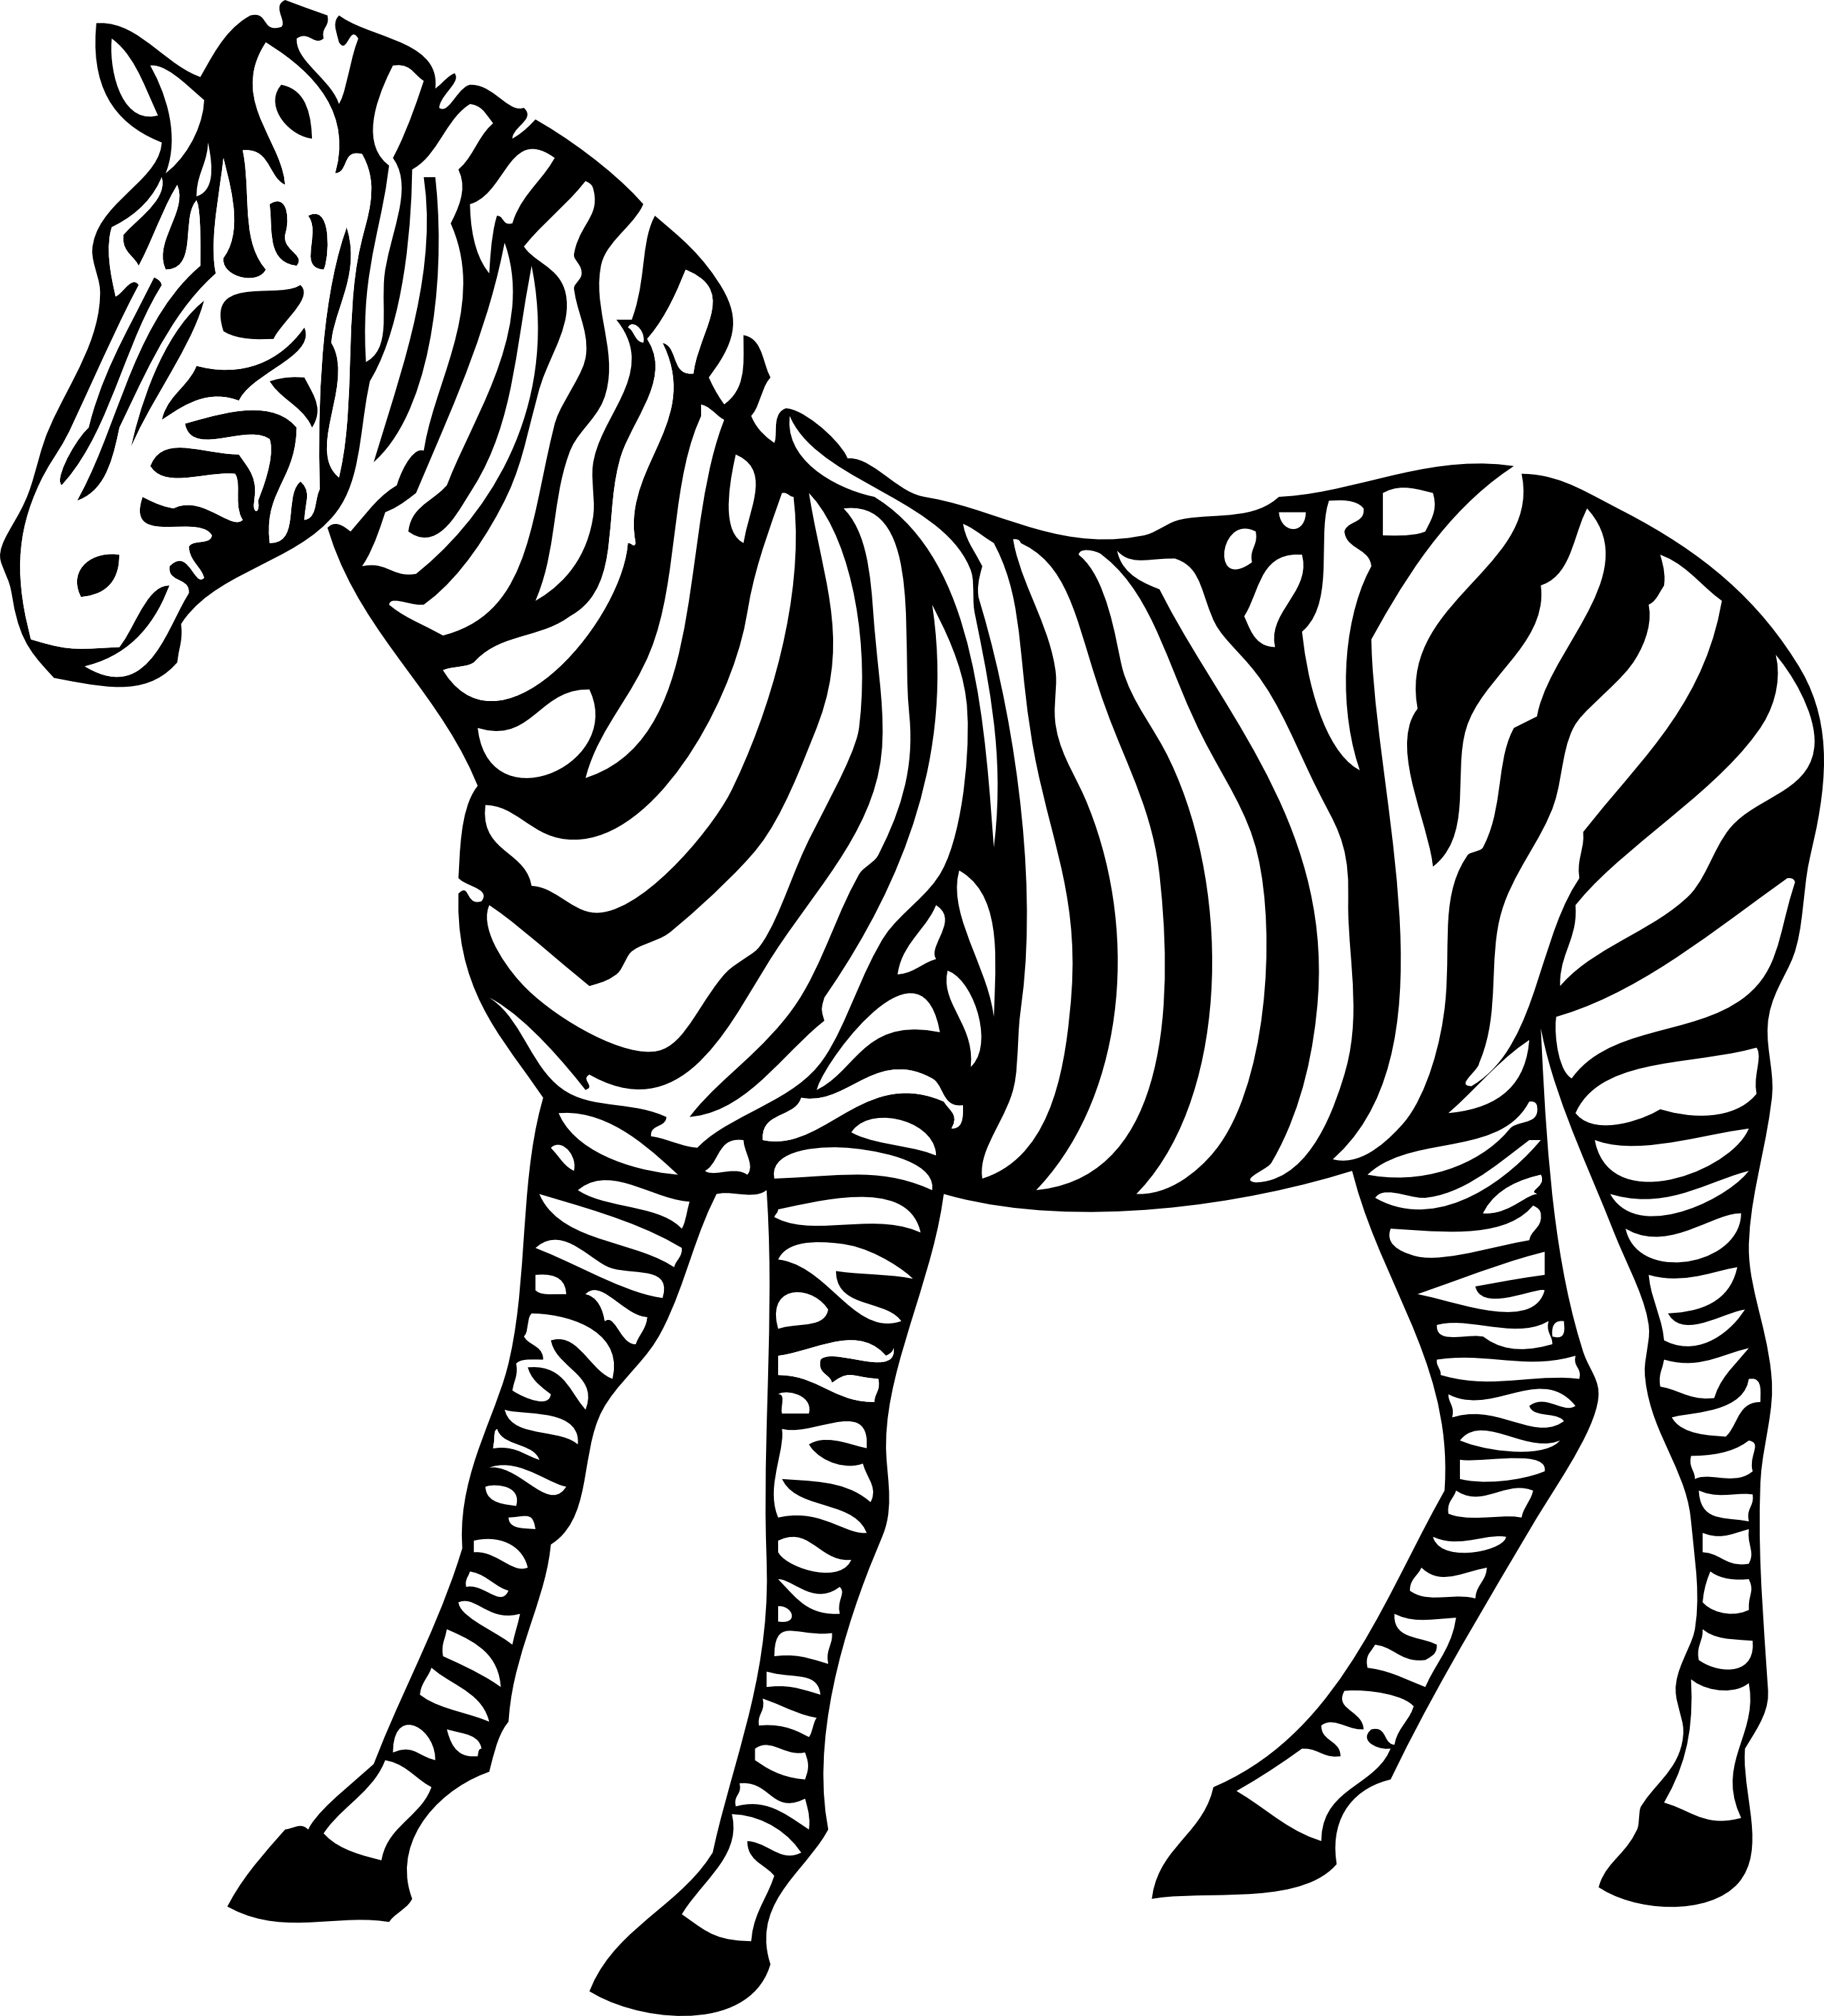 zebra clipart black and white - Zebra Clipart Black And White